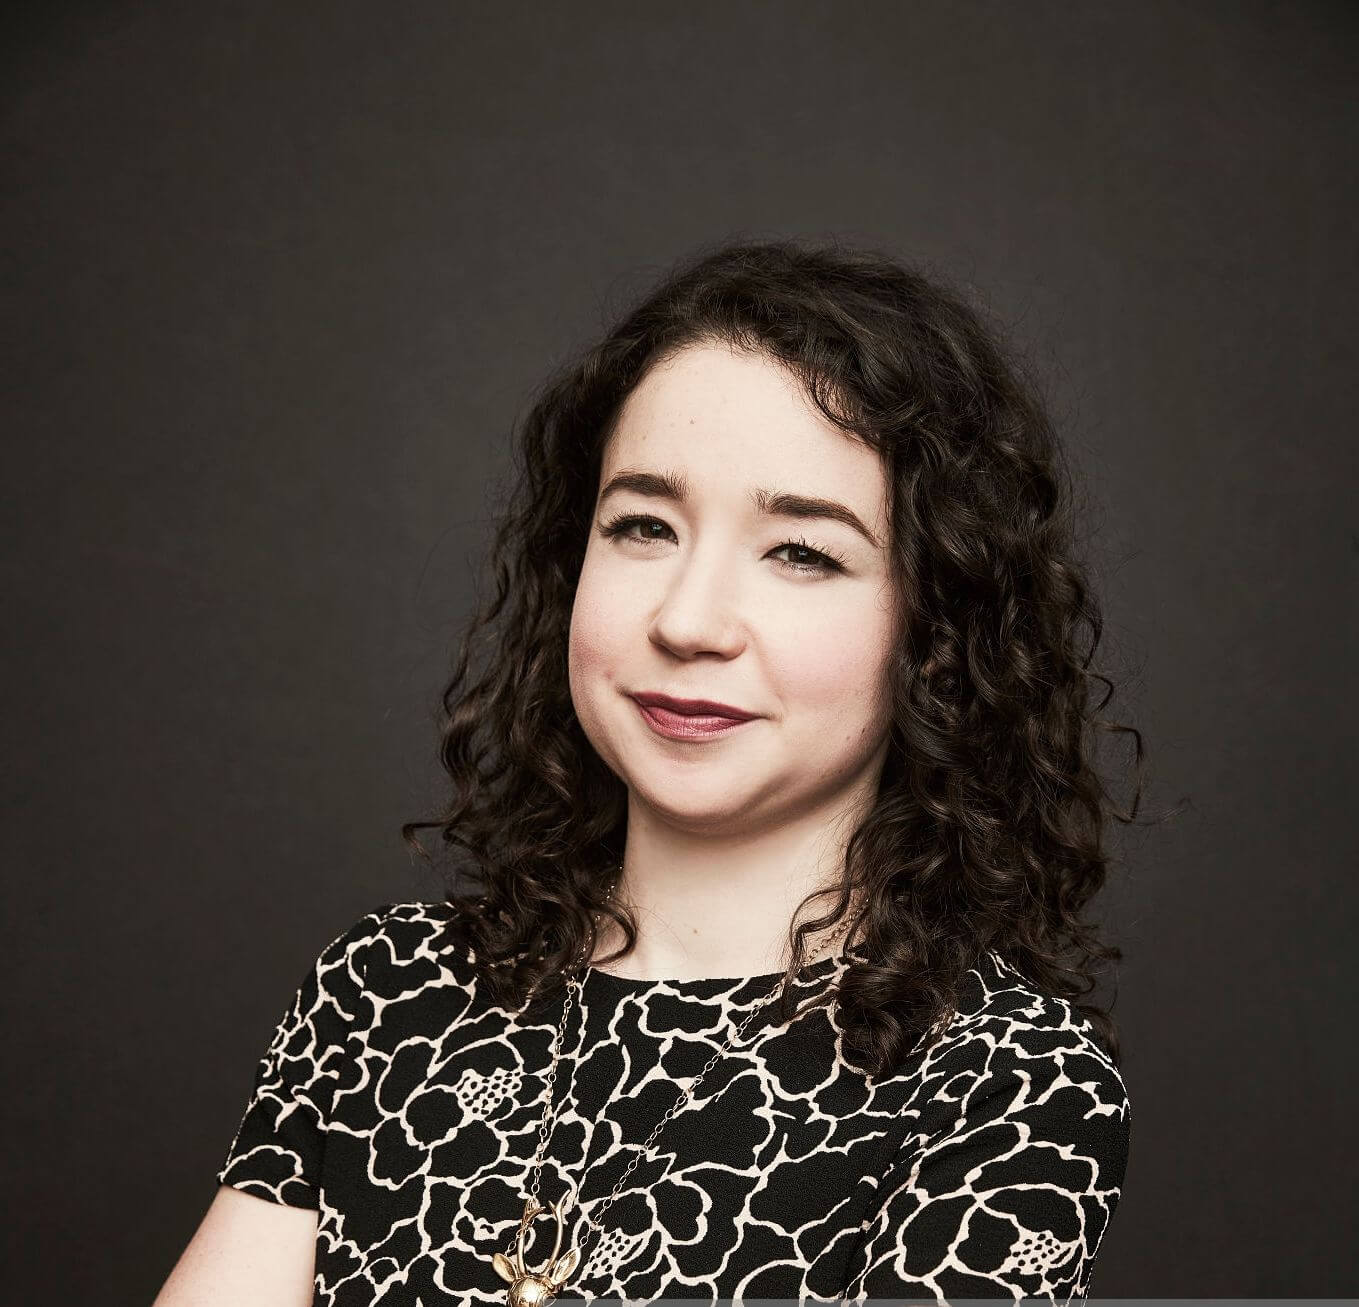 Sarah Steele sexy pictures